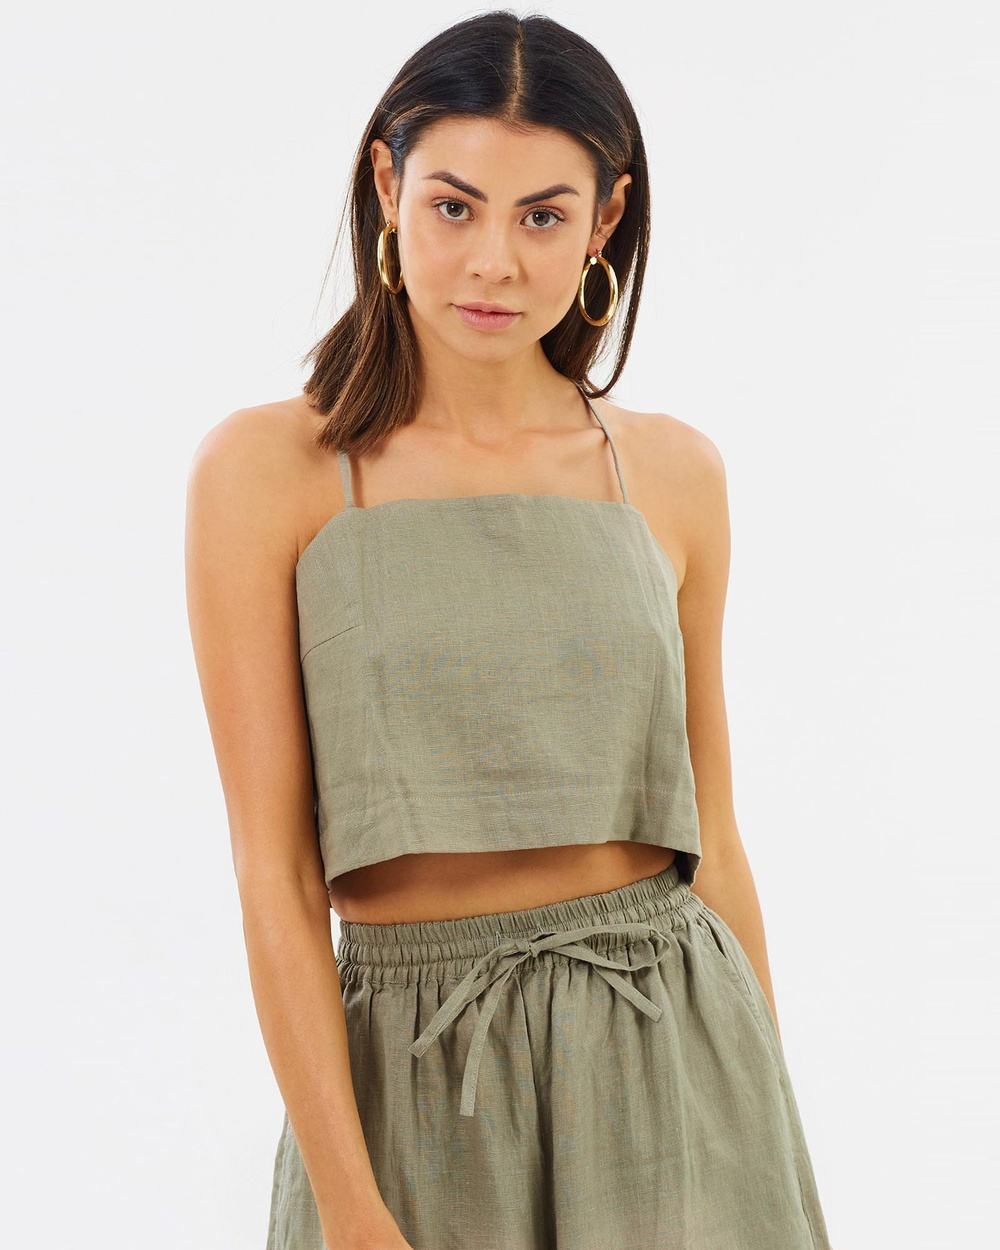 Arthur Apparel Mini Camisole Cropped tops Sage Mini Camisole